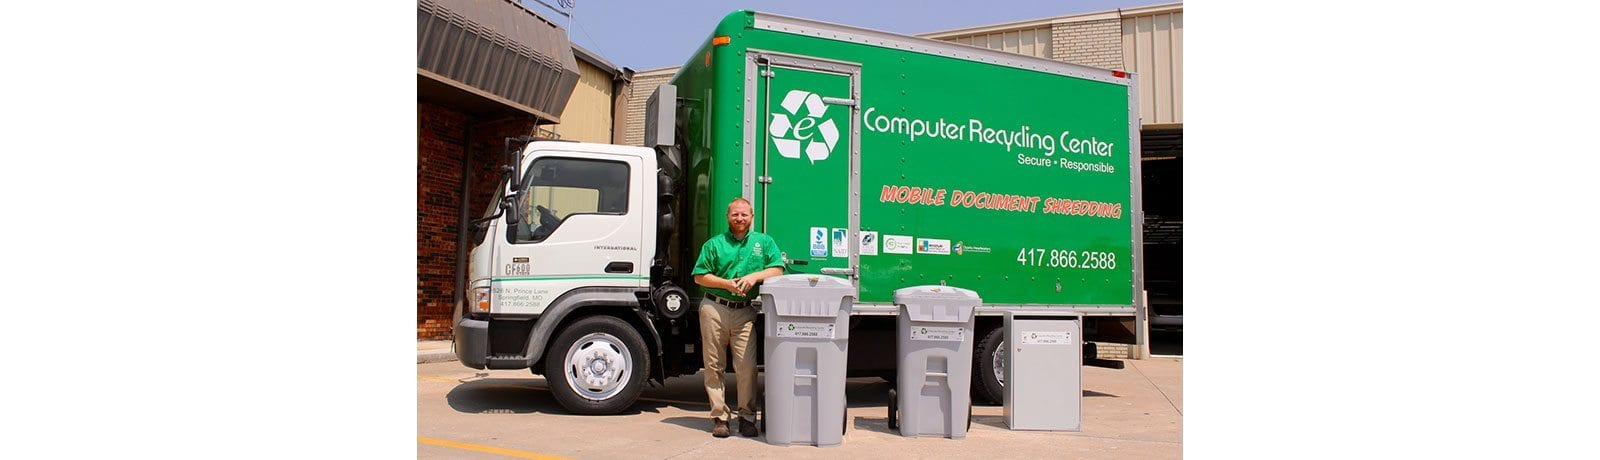 Electronics Recycling Events — MRC Electronics Recycling